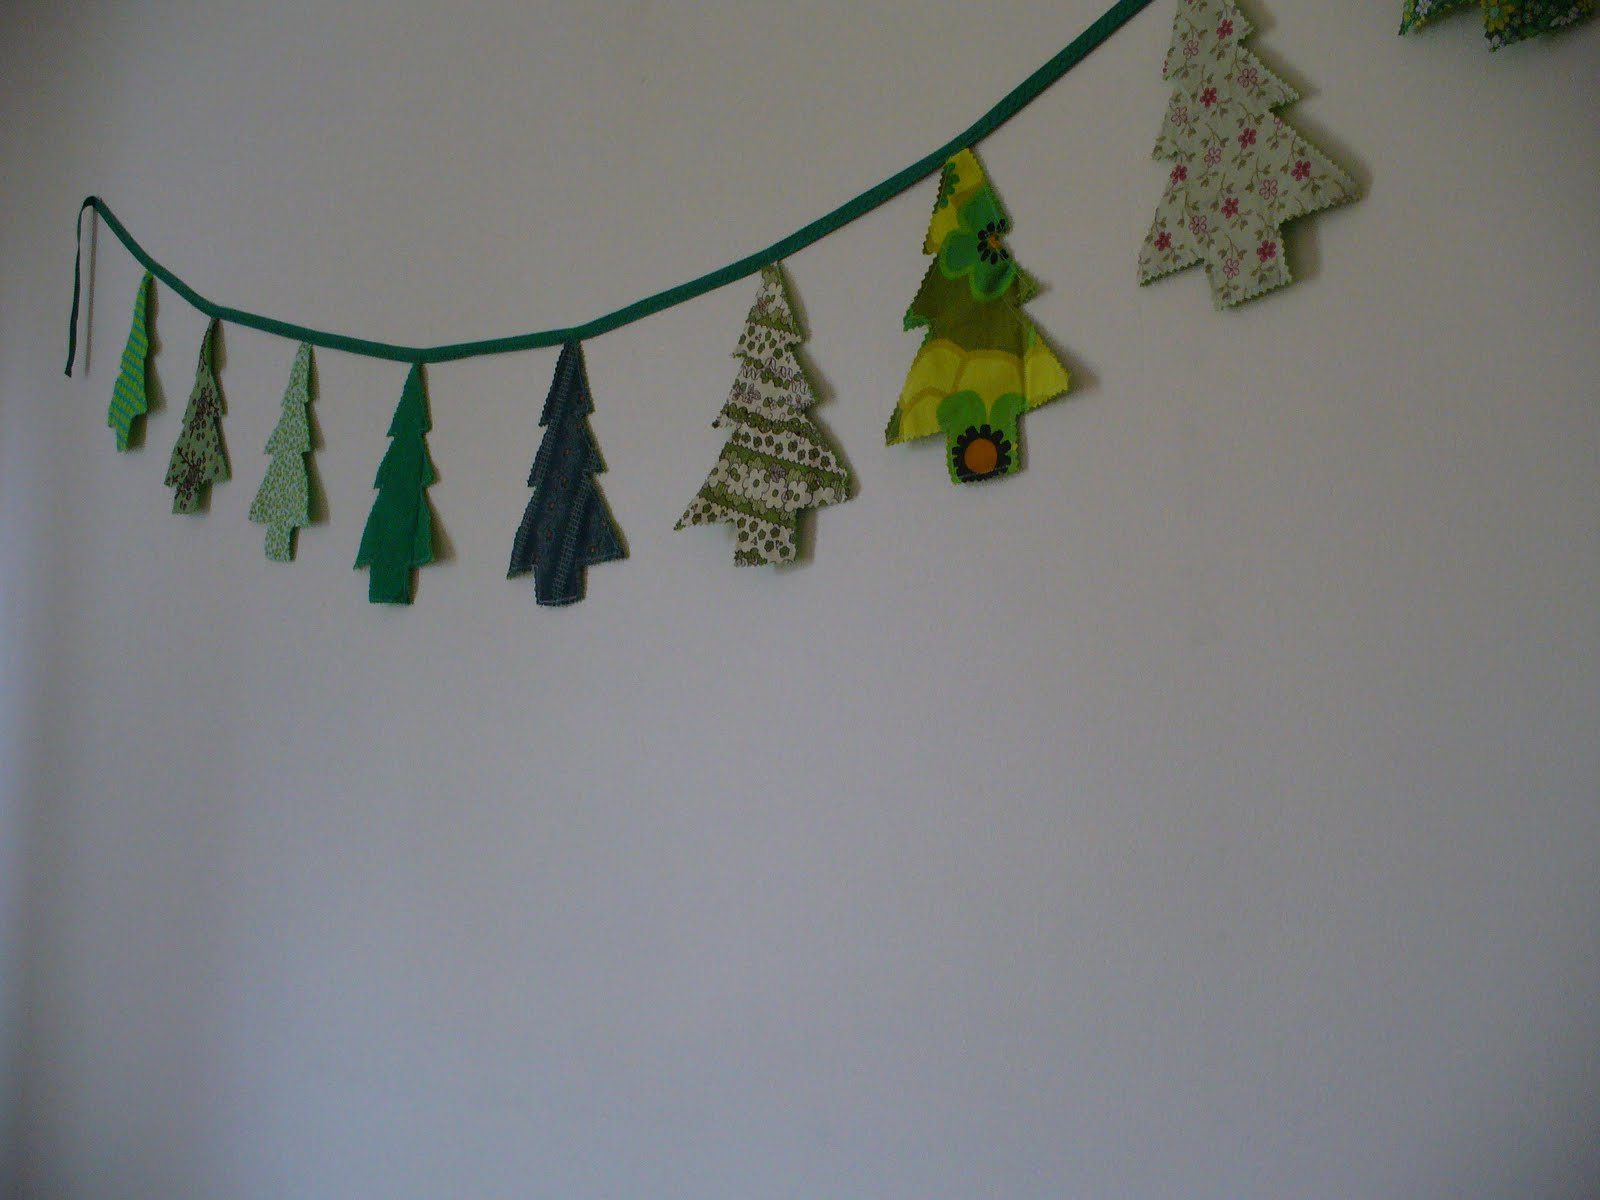 Hanging Wall Decor Ideas 17 Creative Diy Christmas Wall Decor Ideas